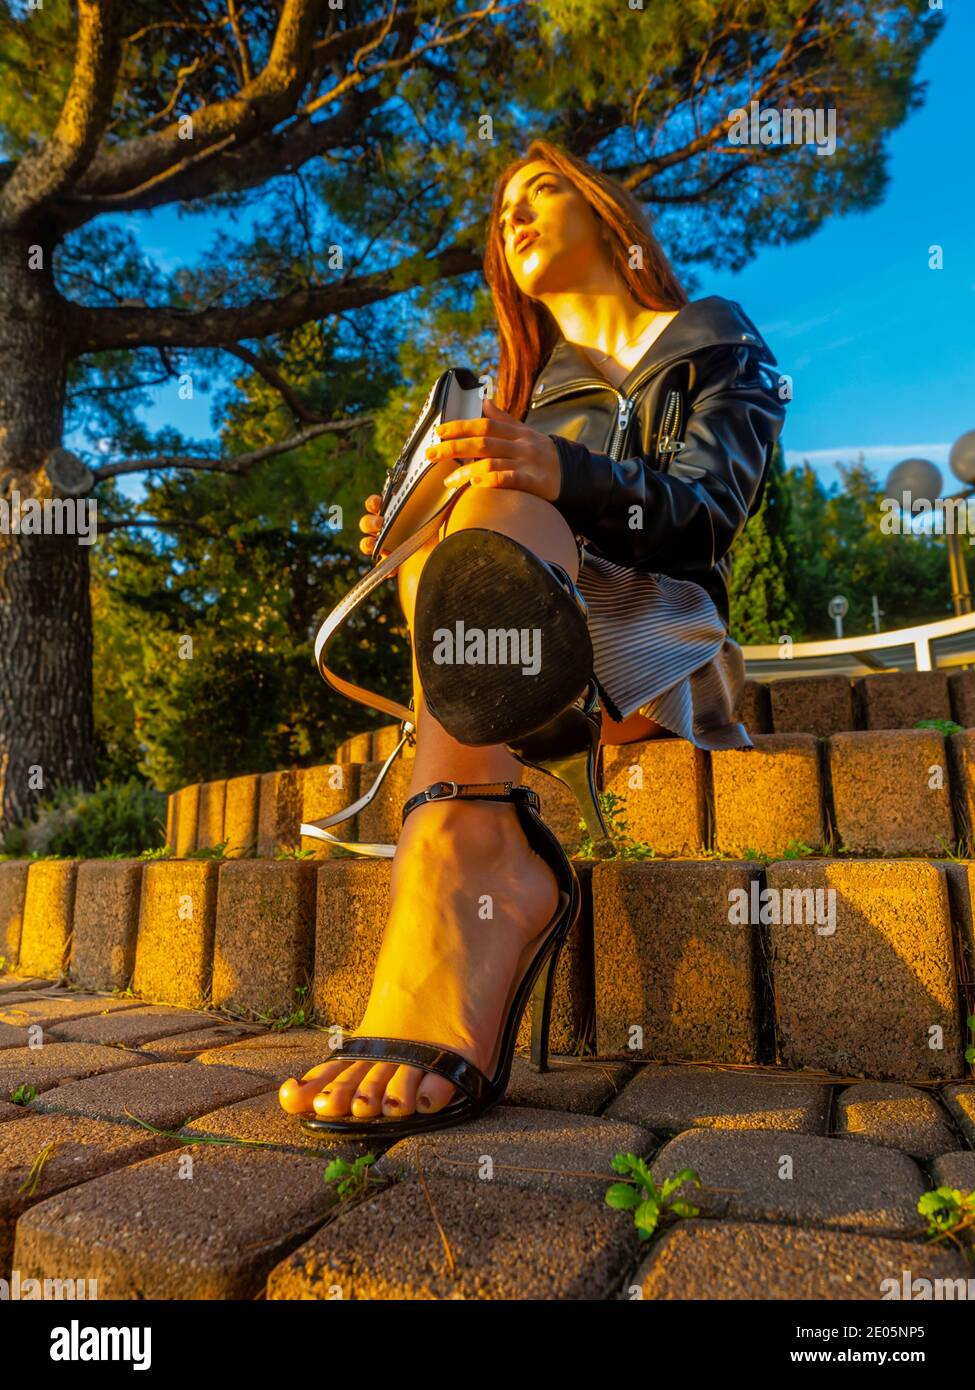 Teengirl sitting in park on steps under lit by warm late afternoon sunset light legs heels full length whole body Stock Photo